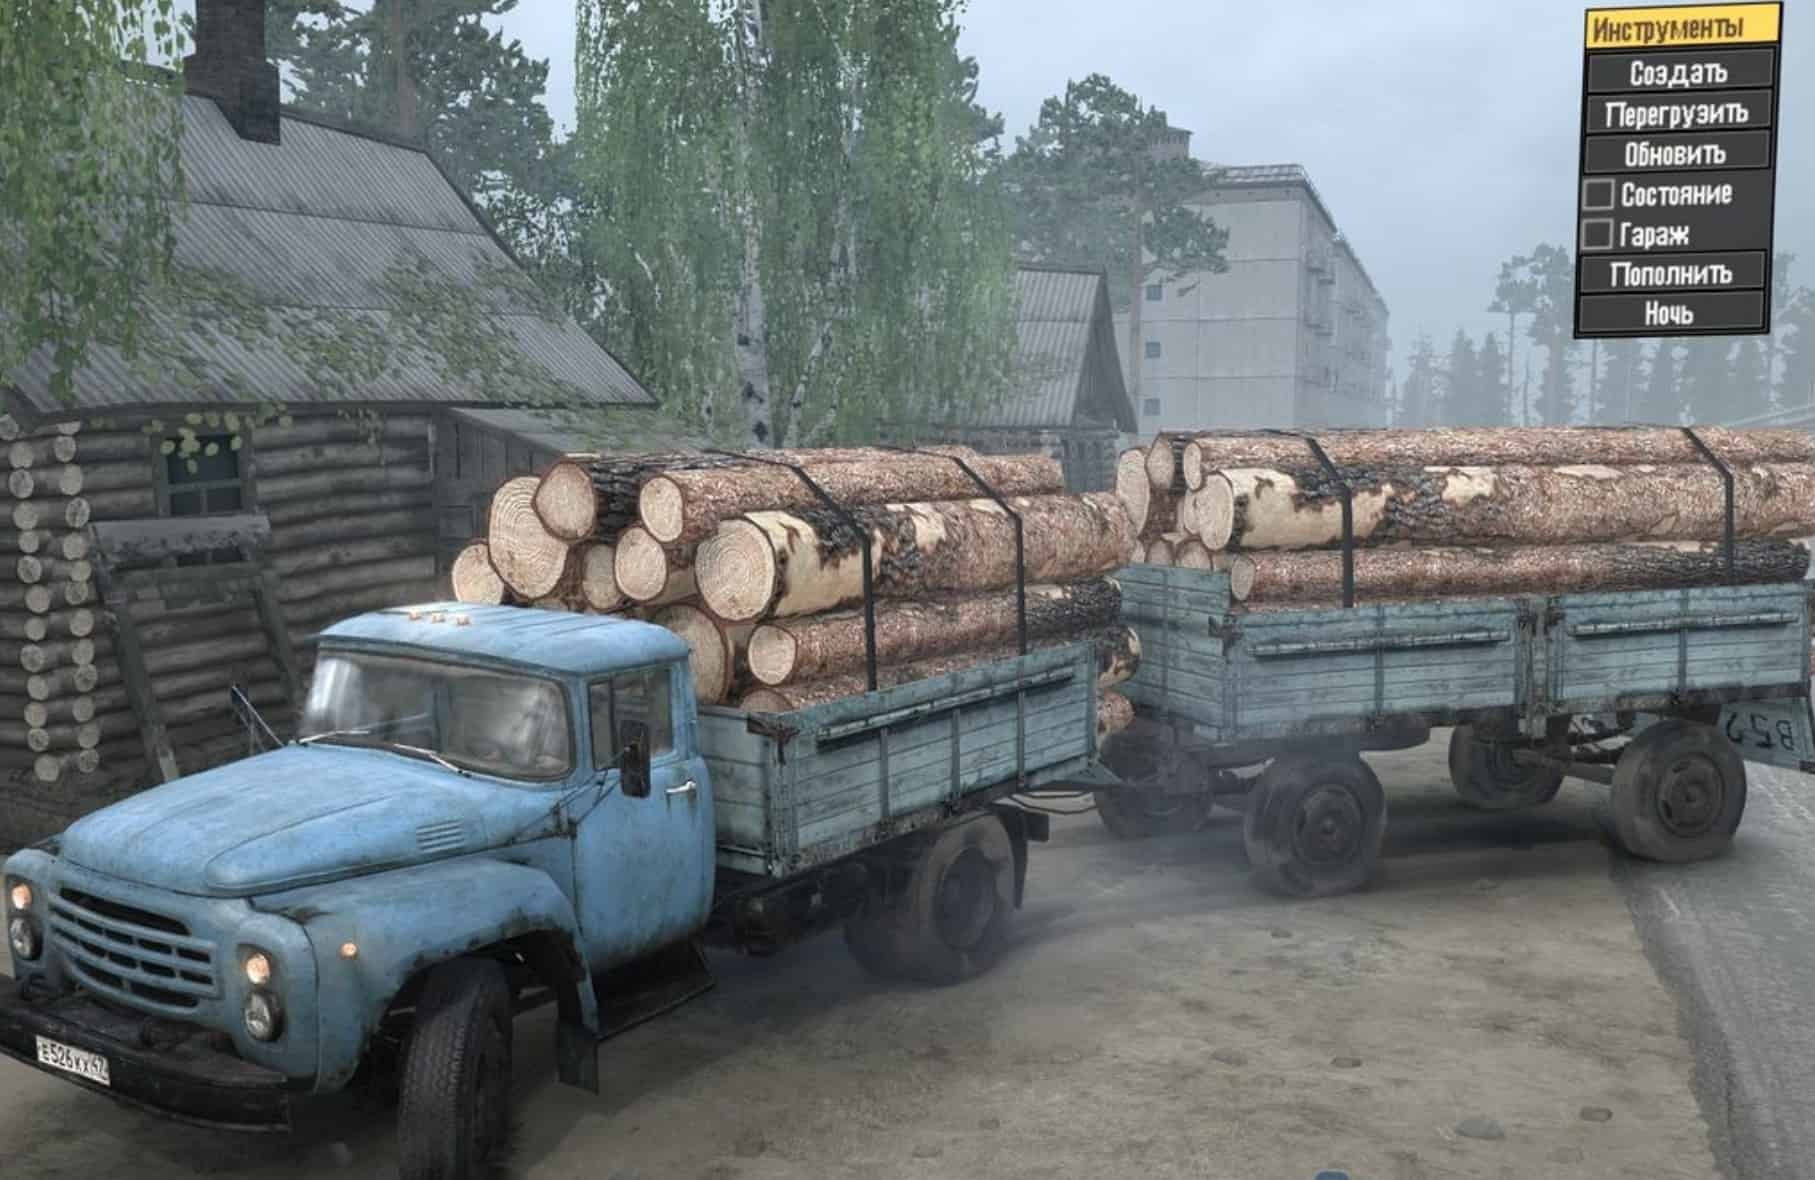 Zil-130 Truck v12.11.17 - Spintires: MudRunner Mod on world globe, world war, world military, world hunger, world most beautiful nature, world of warships, world wide web, world wallpaper, world travel, world history, world culture, world earth, world shipping lanes, world atlas, world records, world flag, world glode, world projection, world statistics, world border,